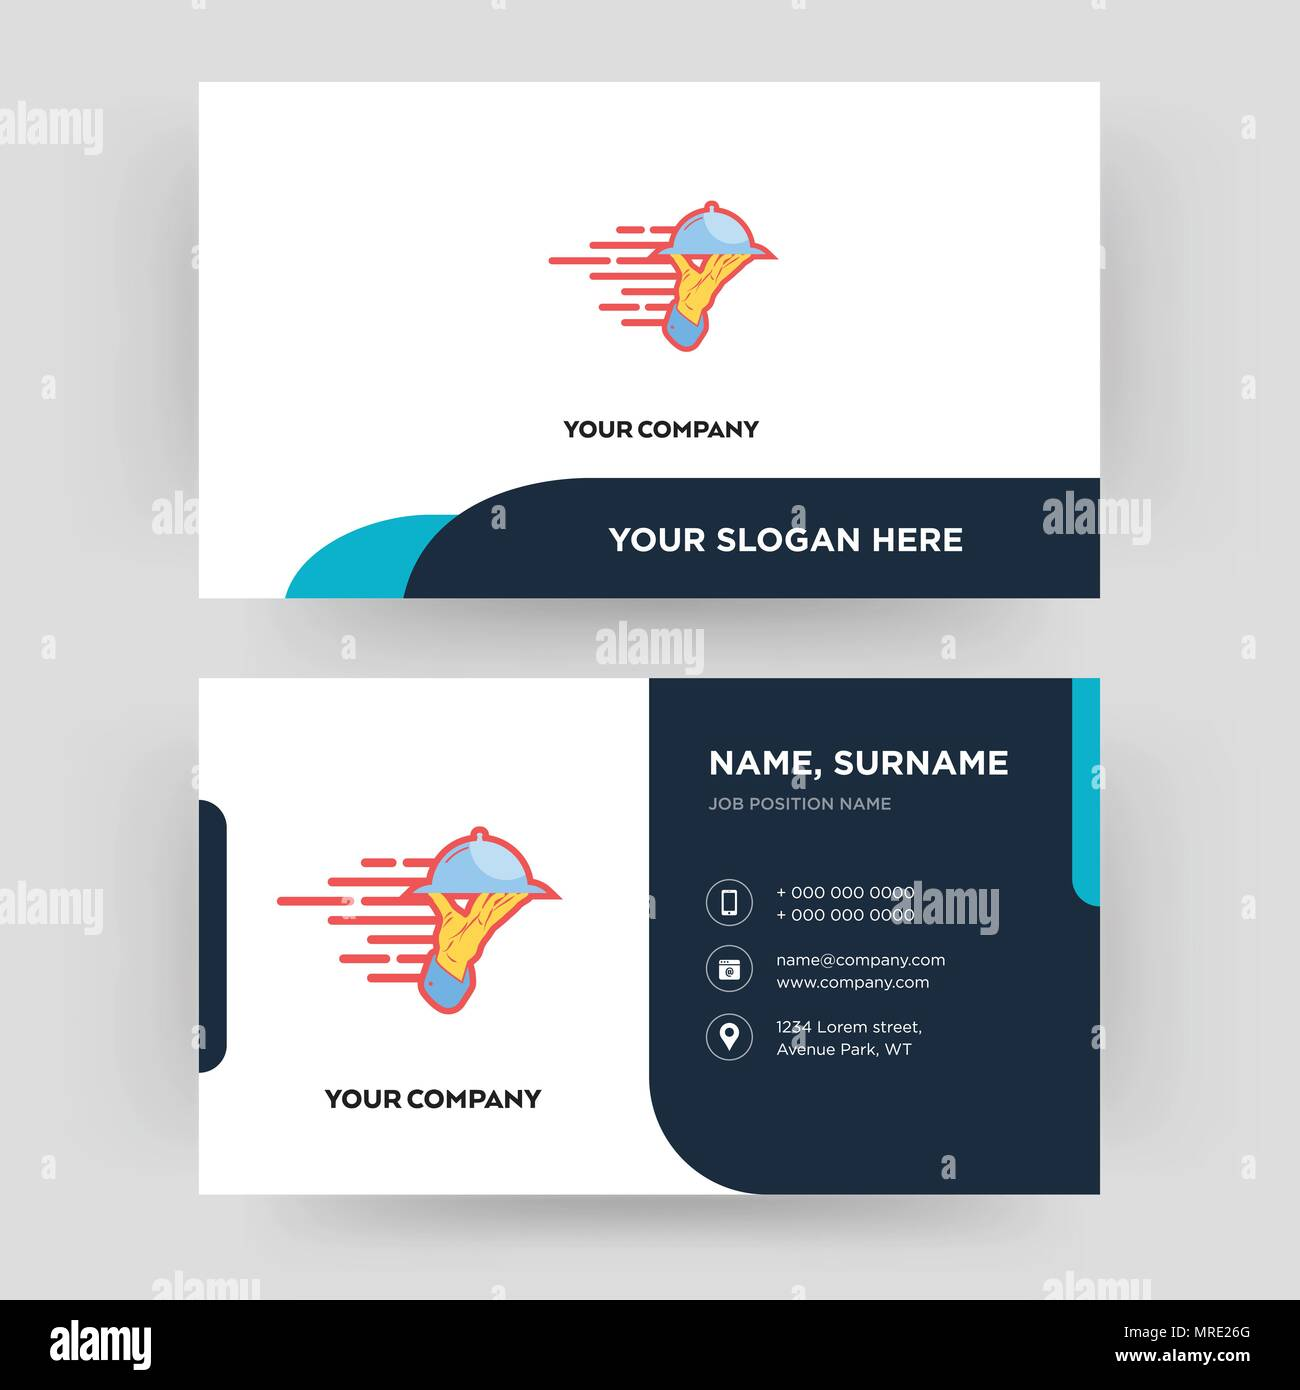 Catering services business card design template visiting for your catering services business card design template visiting for your company modern creative and clean identity card vector reheart Image collections